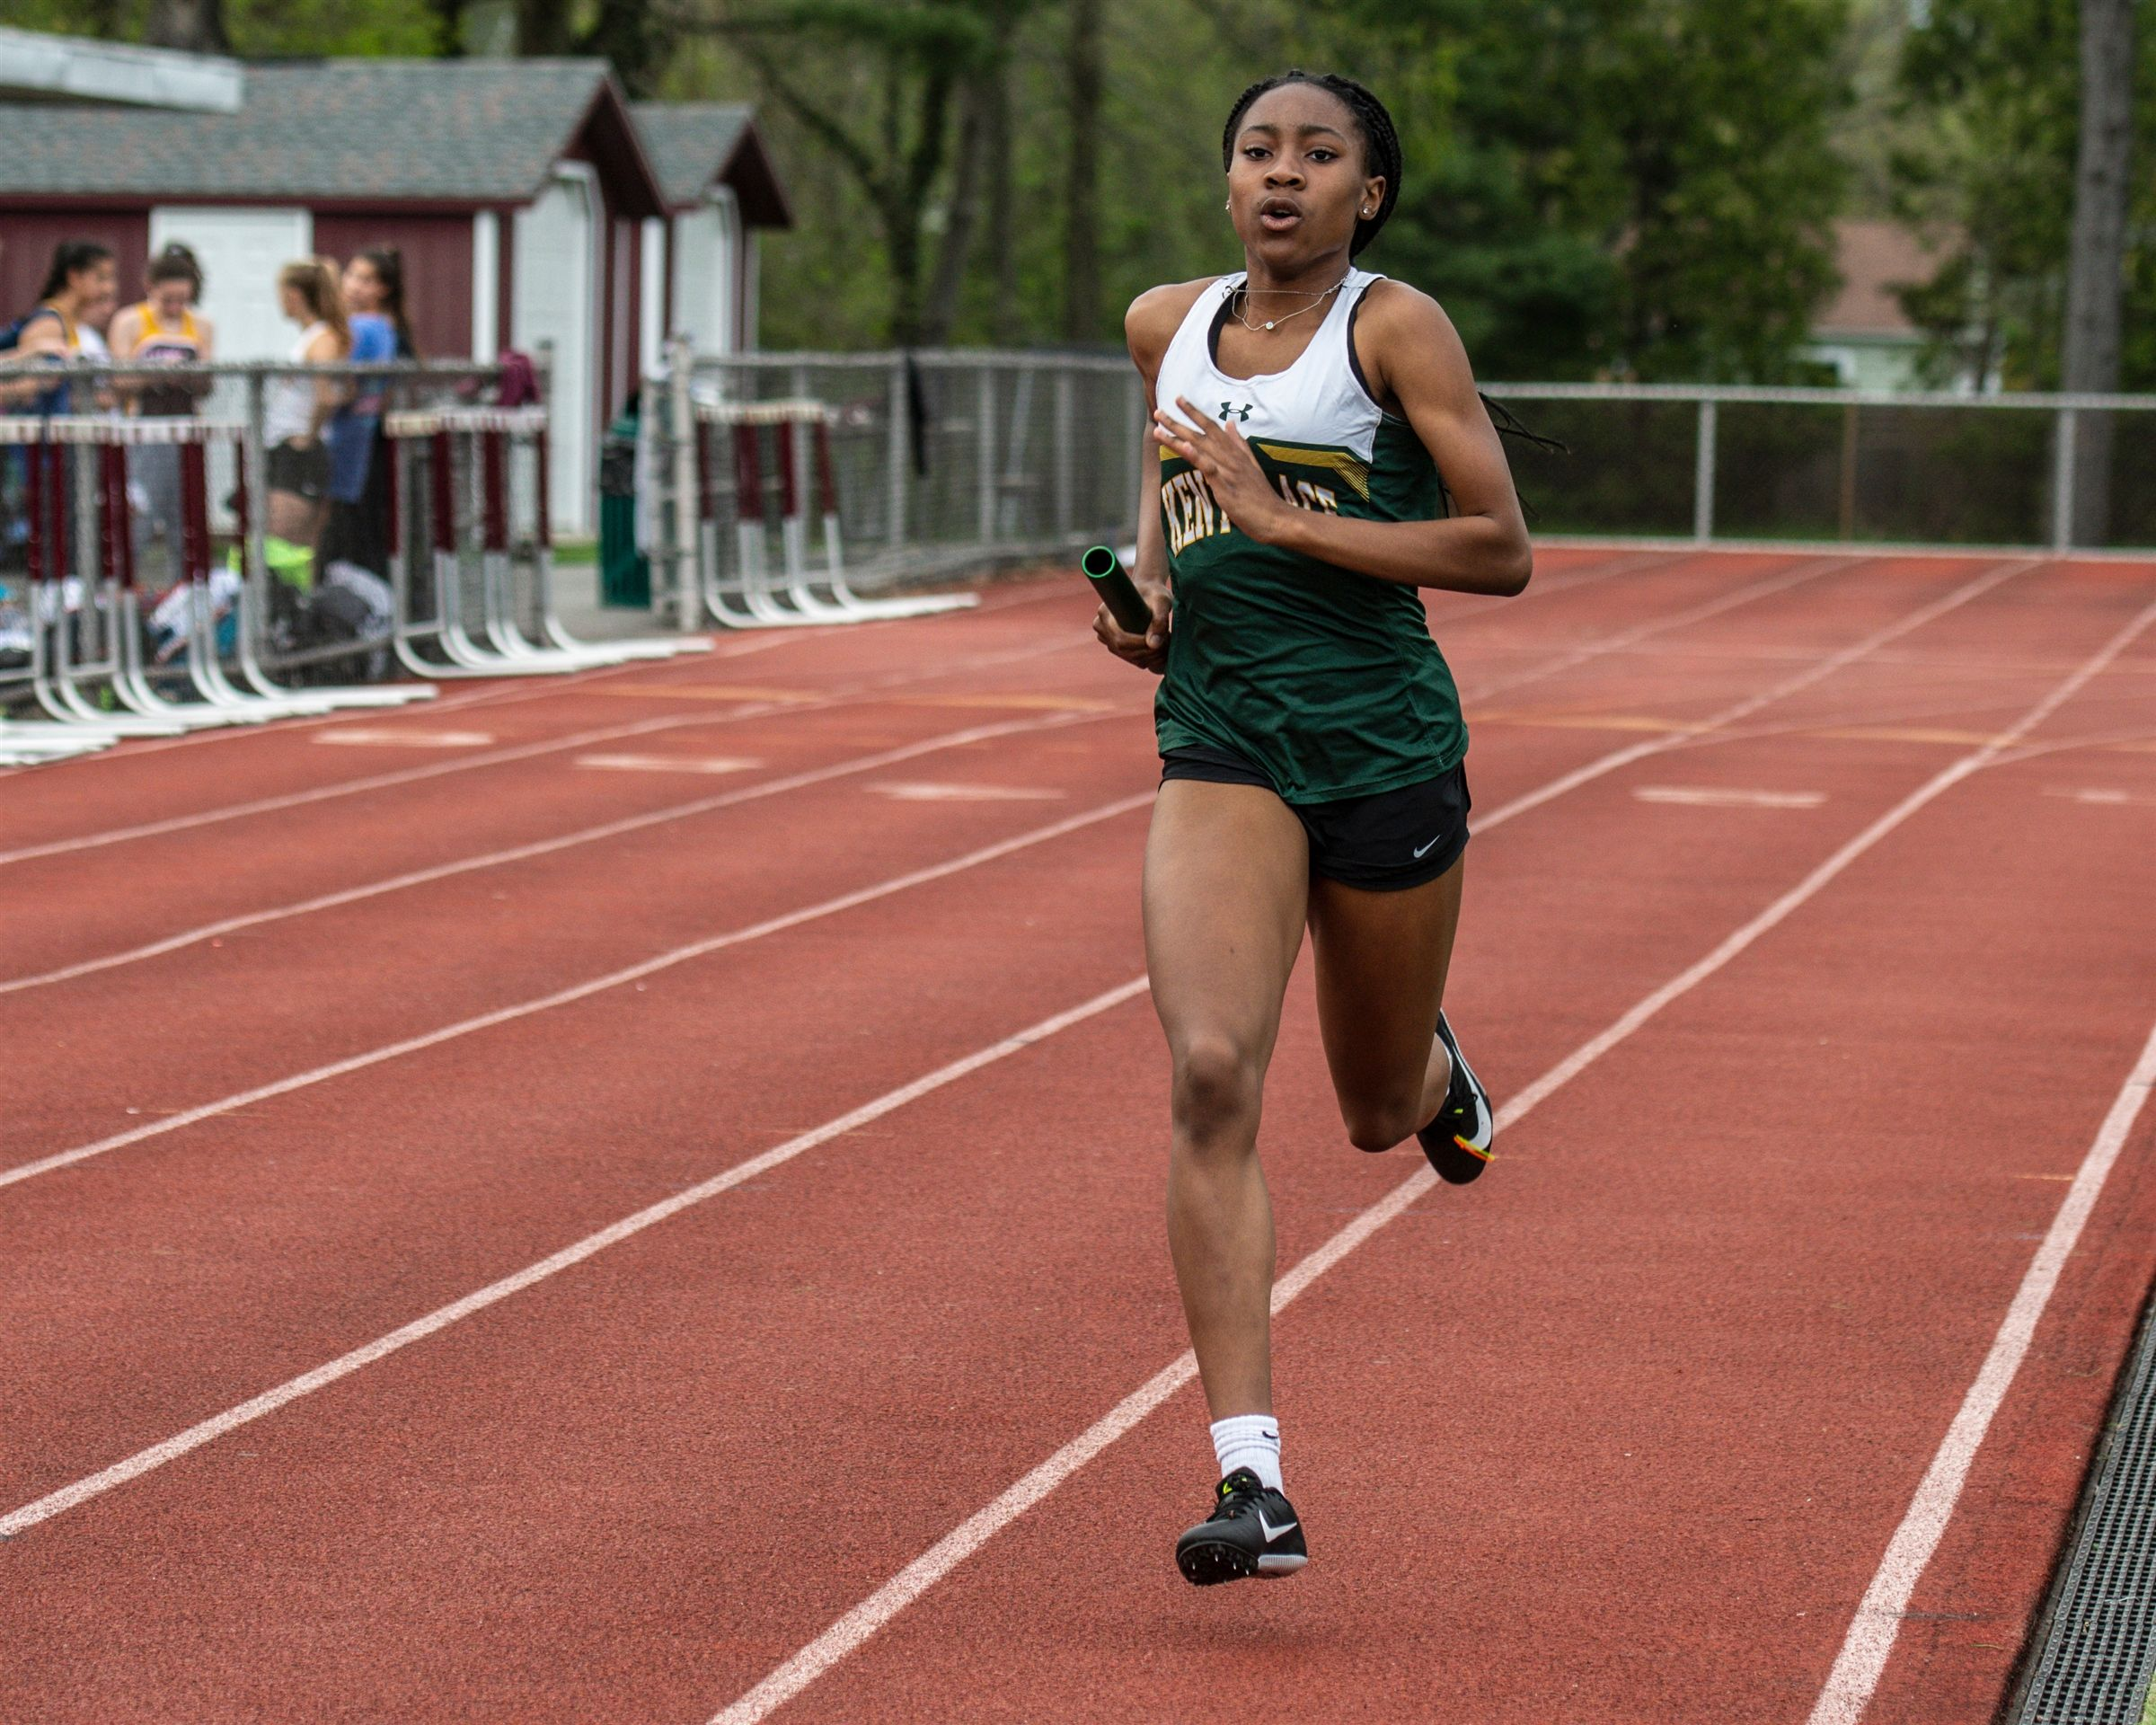 Christiana N. leads the Varsity Track 4X400m relay team to victory (2019).